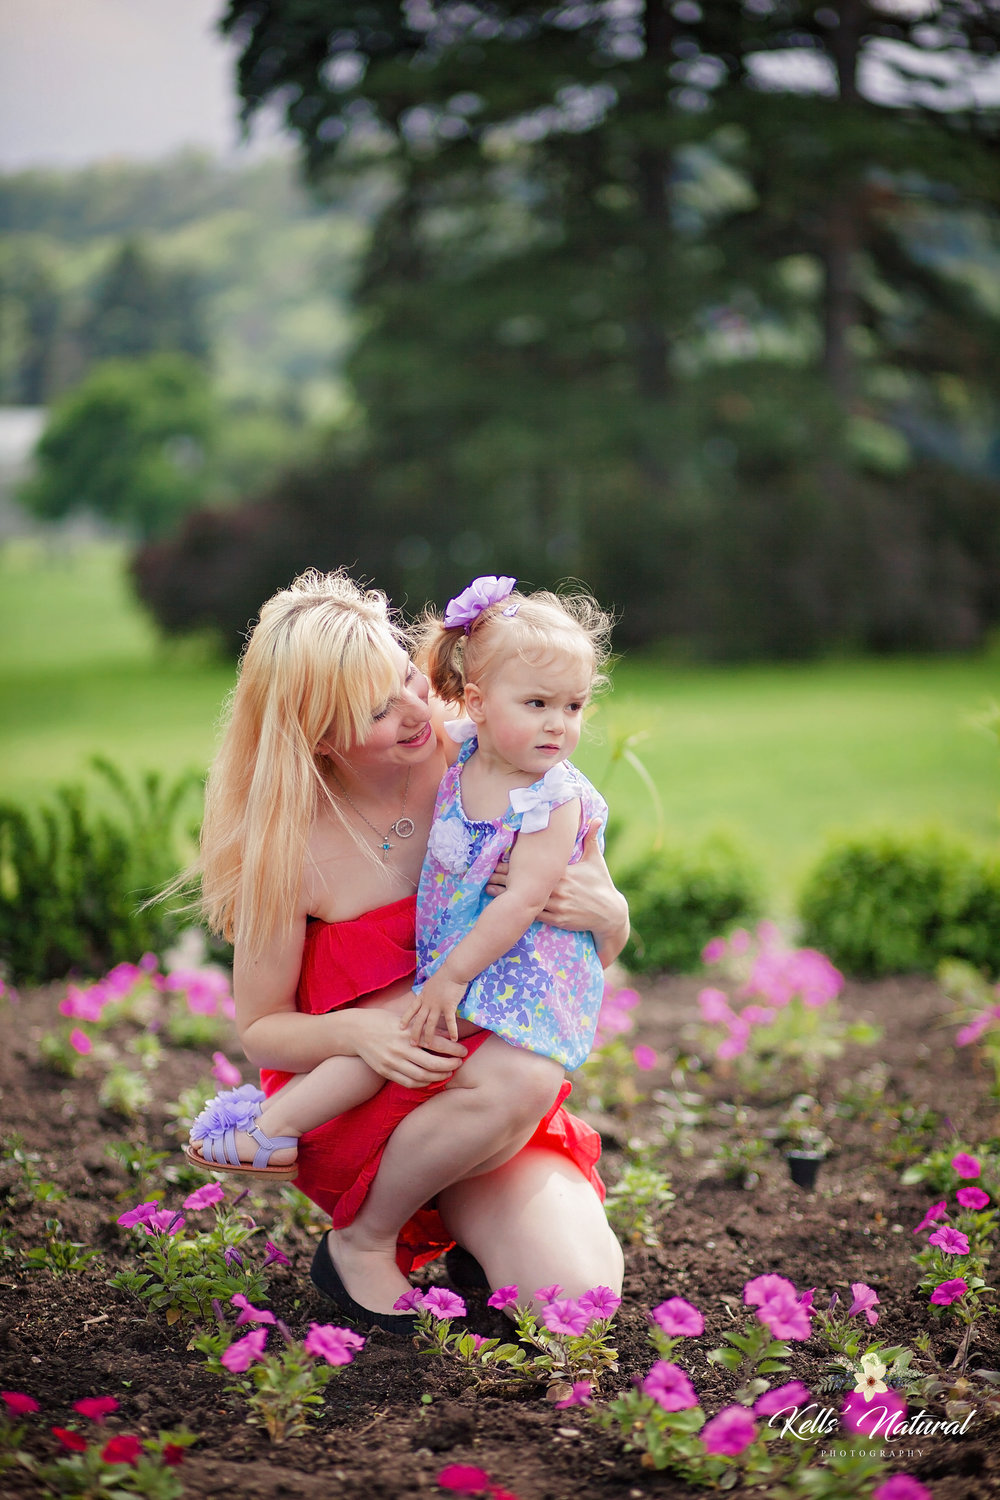 Mother's Day Photo Session Ideas.jpeg